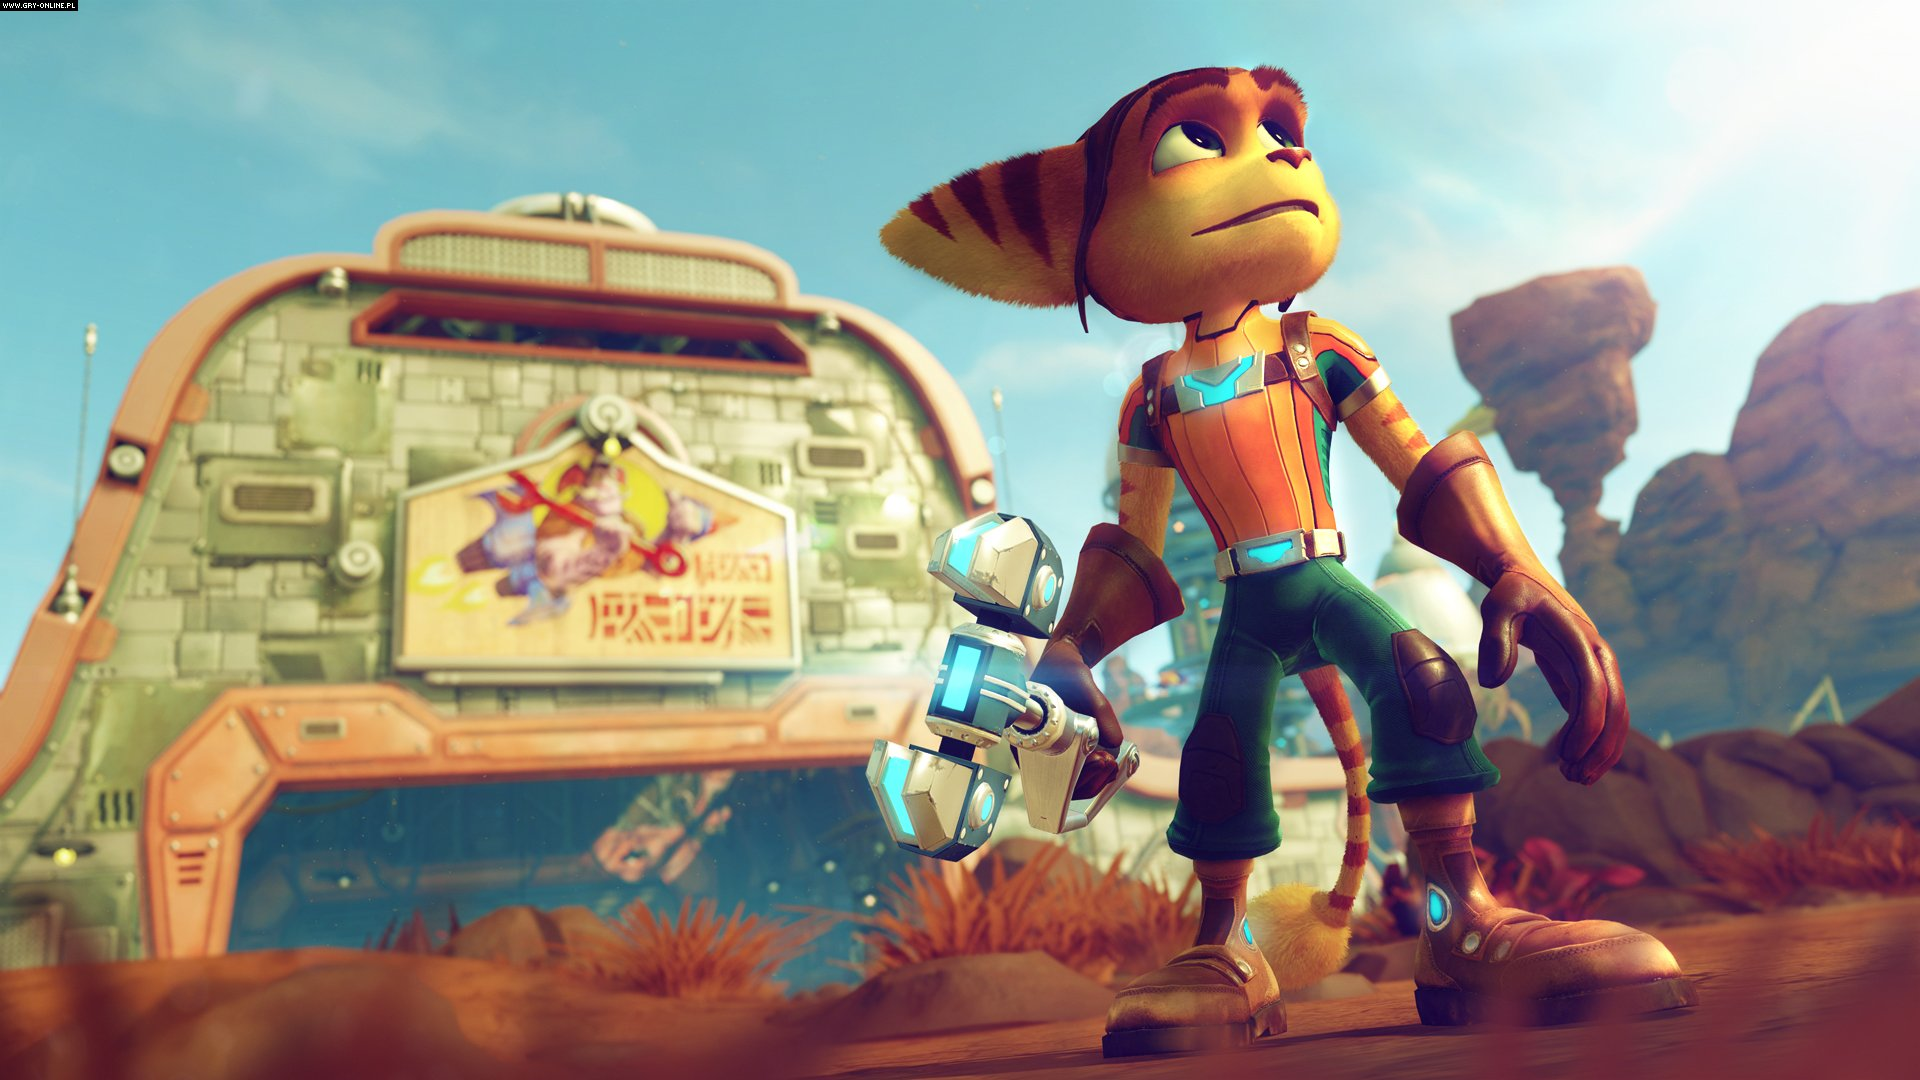 Ratchet & Clank PS4 Gry Screen 14/15, Insomniac Games, Sony Interactive Entertainment